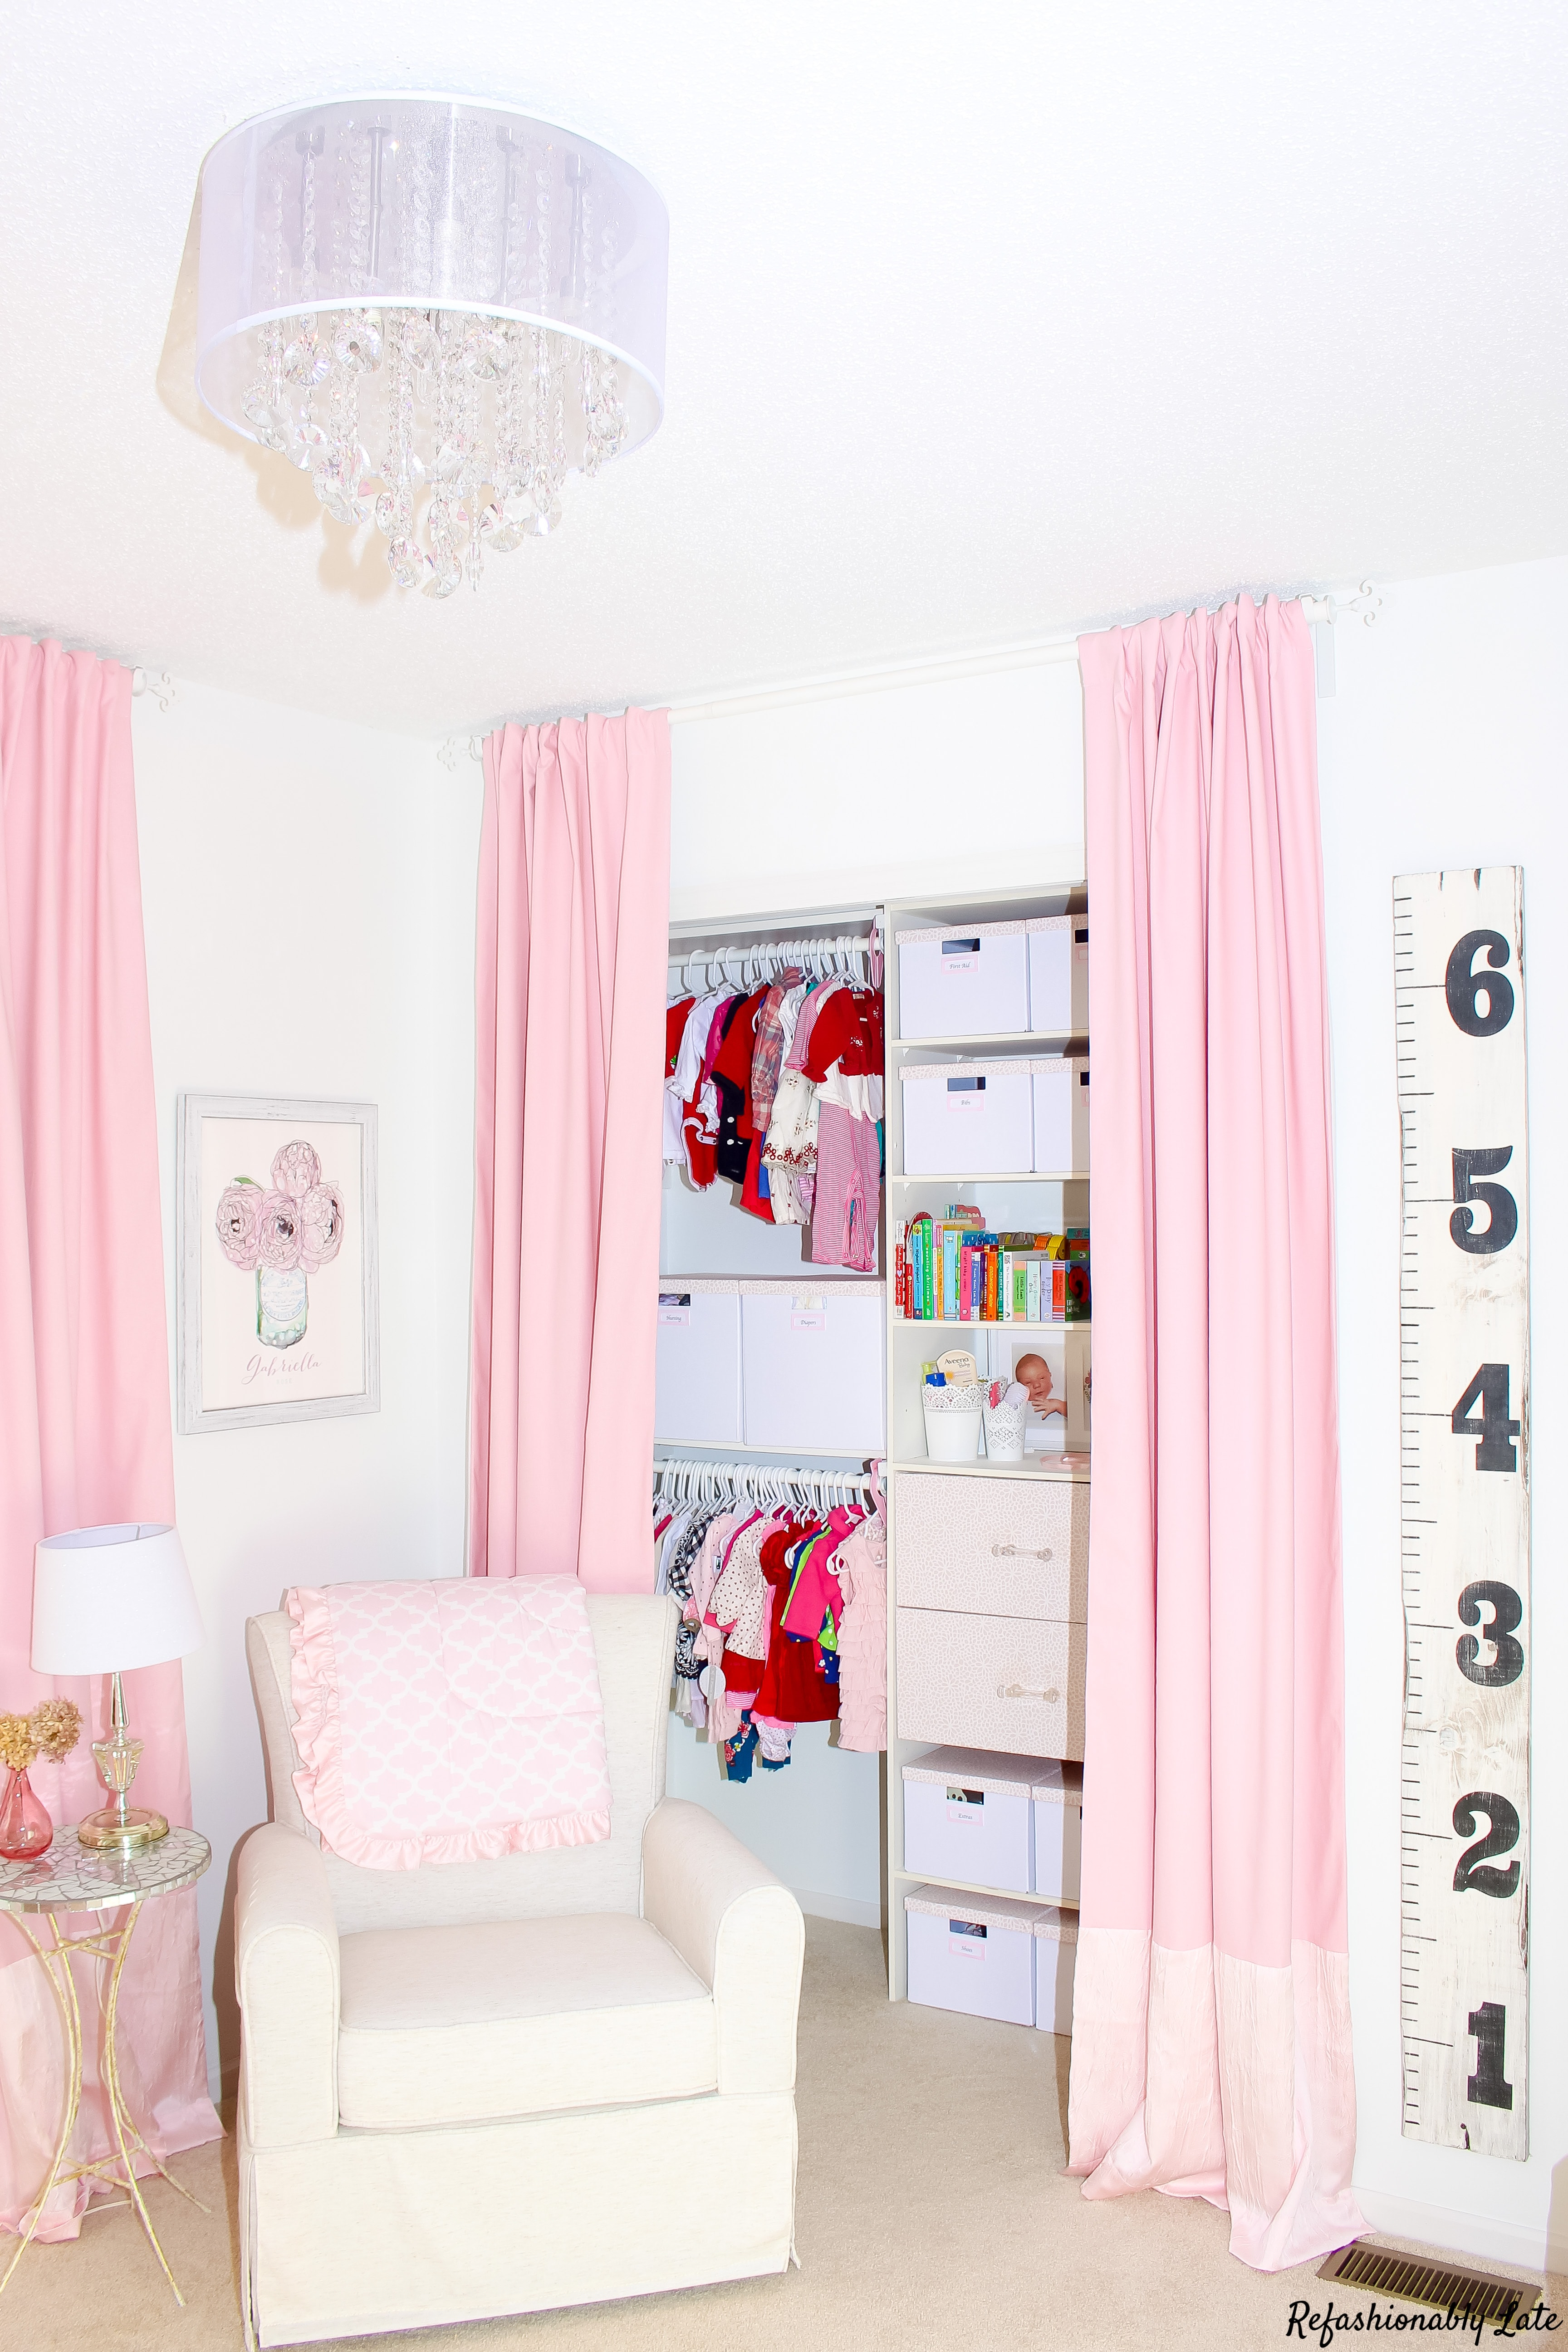 One Room Challenge Nursery Final Reveal - www.refashionablylate.com